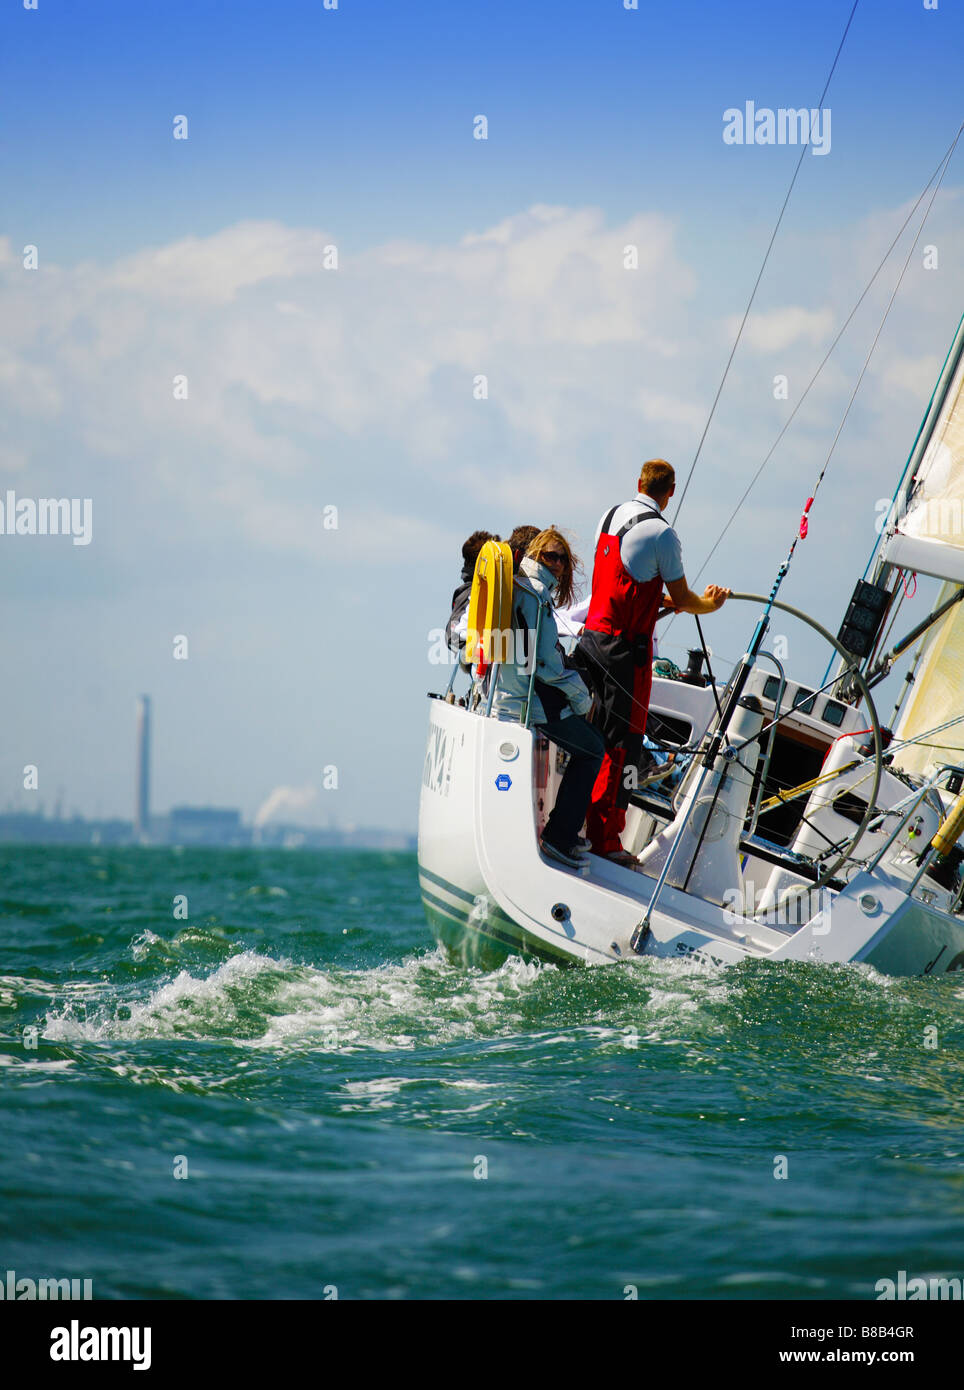 Image of a yacht sailing on the Solent,England. It features the crew and is a back view of the yacht. - Stock Image